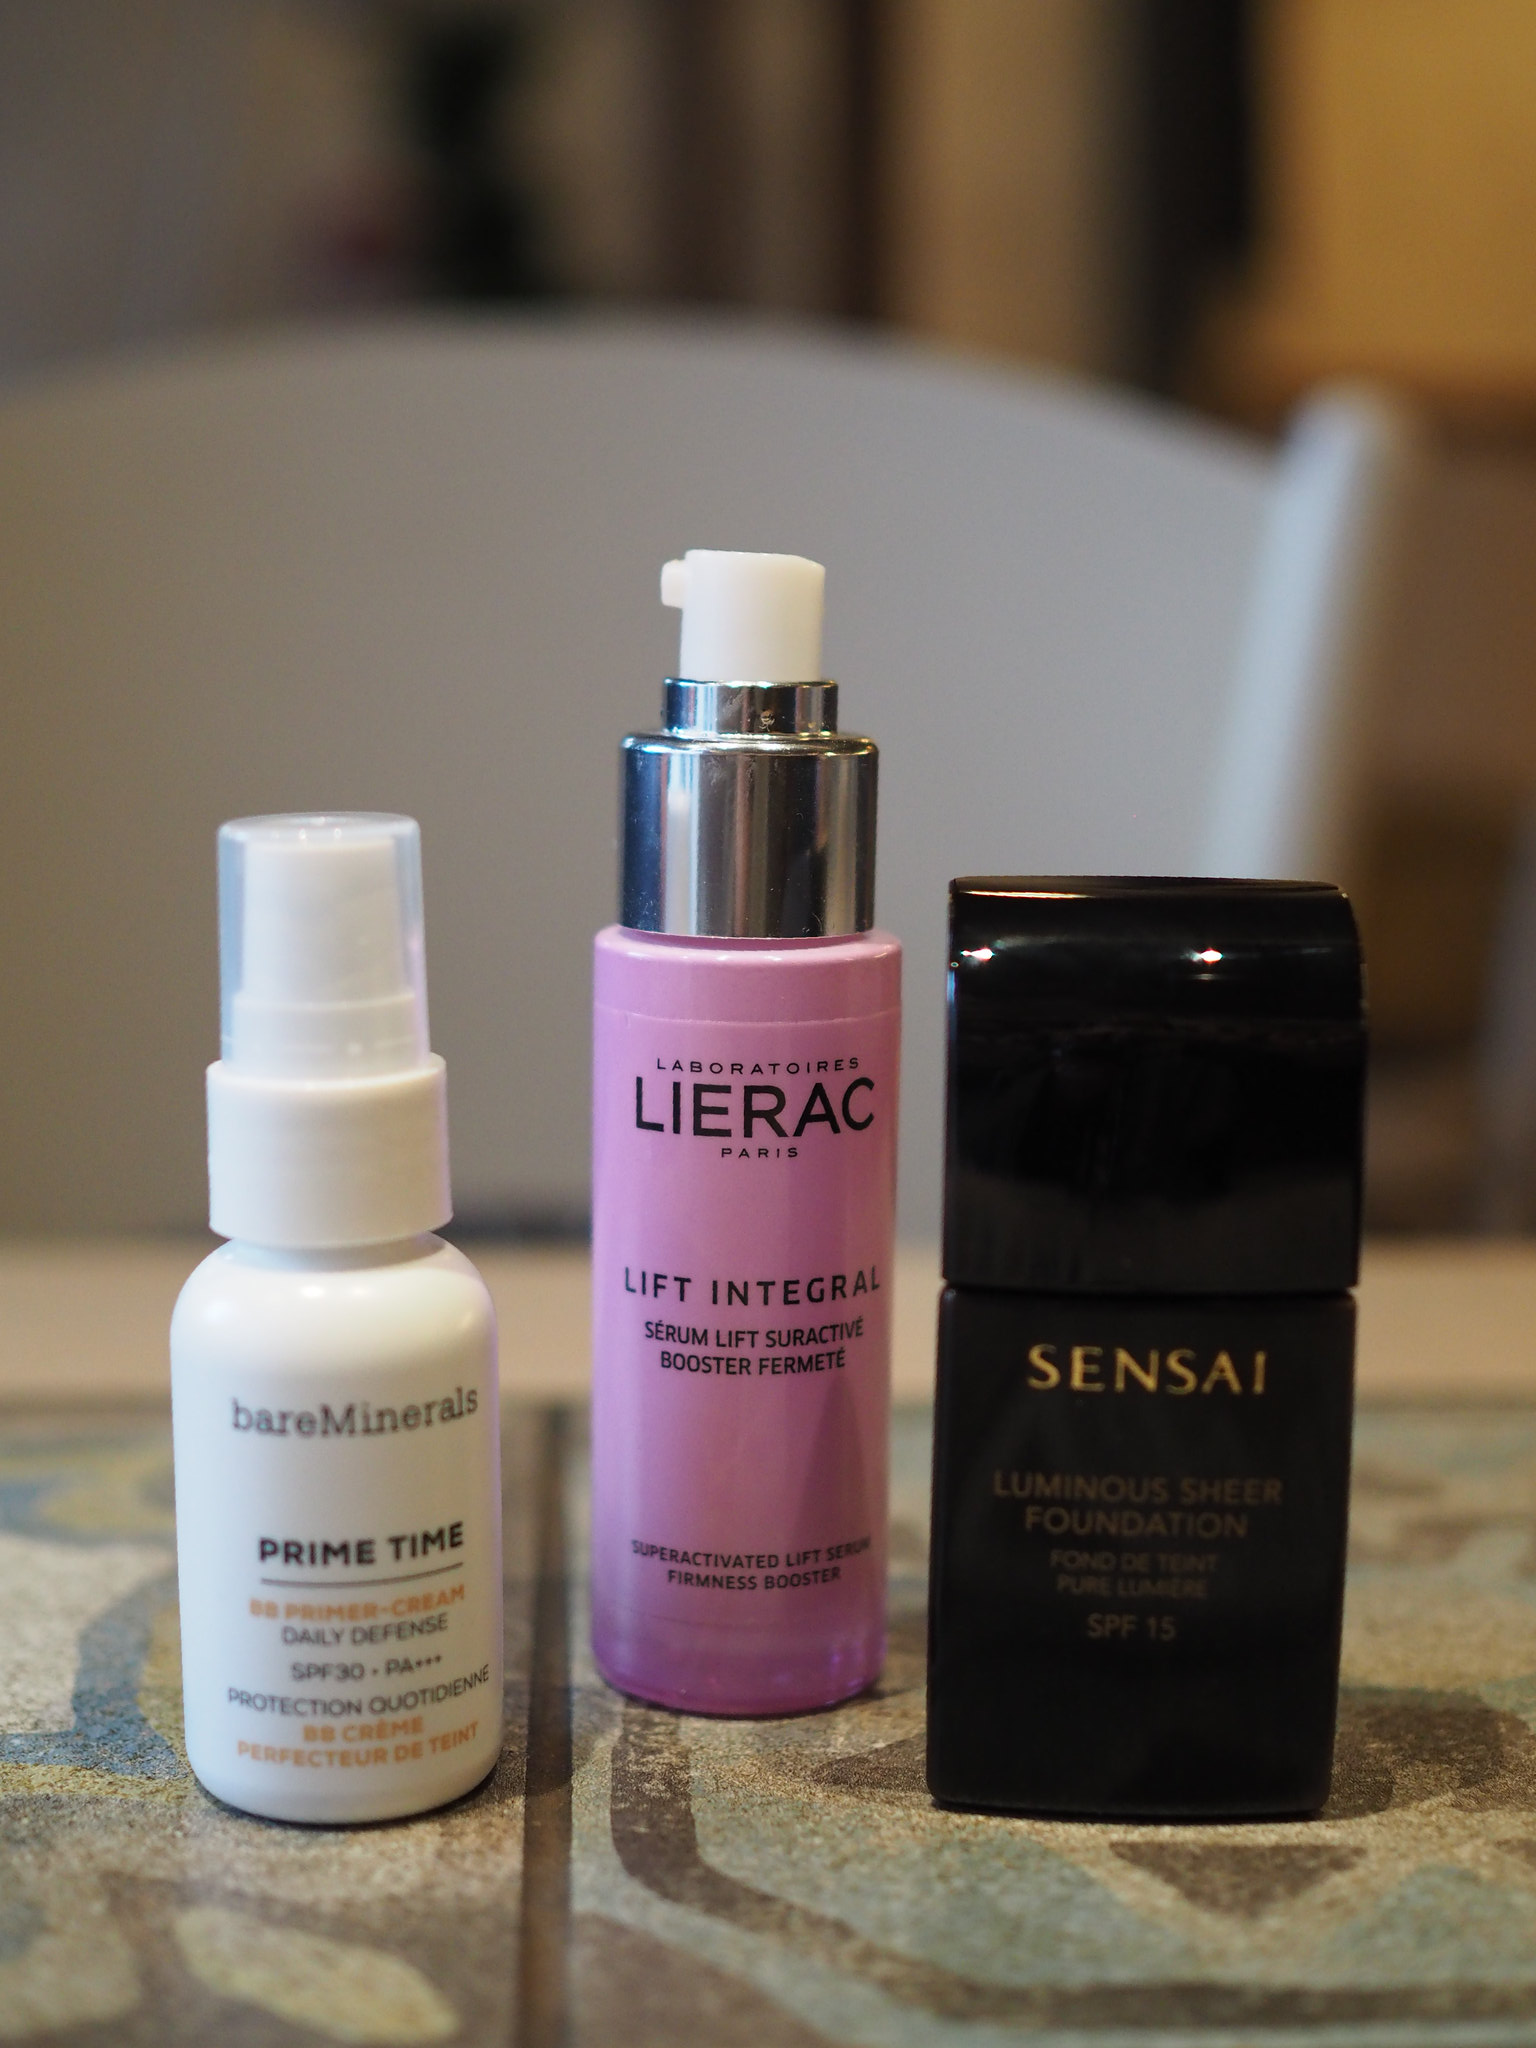 Lierac, Bare Minerals, Sensai, Business Woman